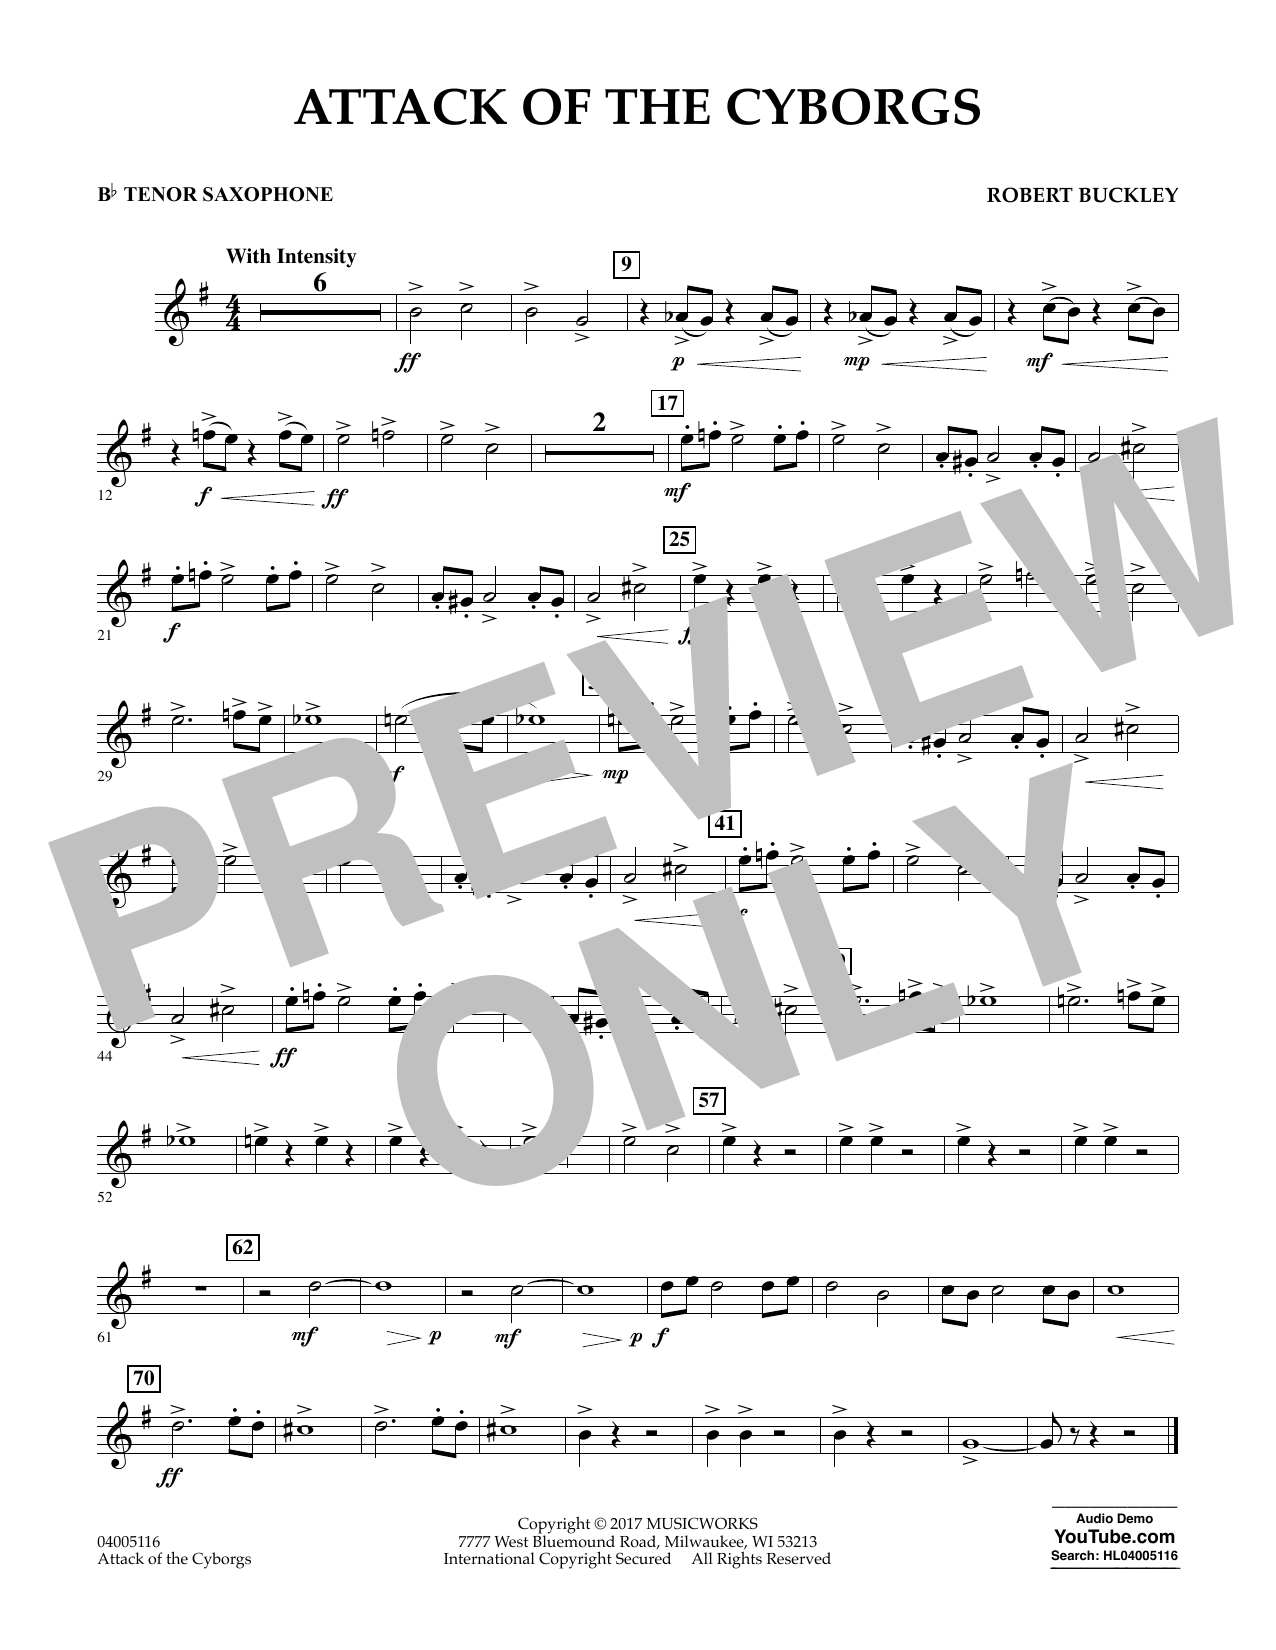 Robert Buckley Attack of the Cyborgs - Bb Tenor Saxophone sheet music notes and chords. Download Printable PDF.